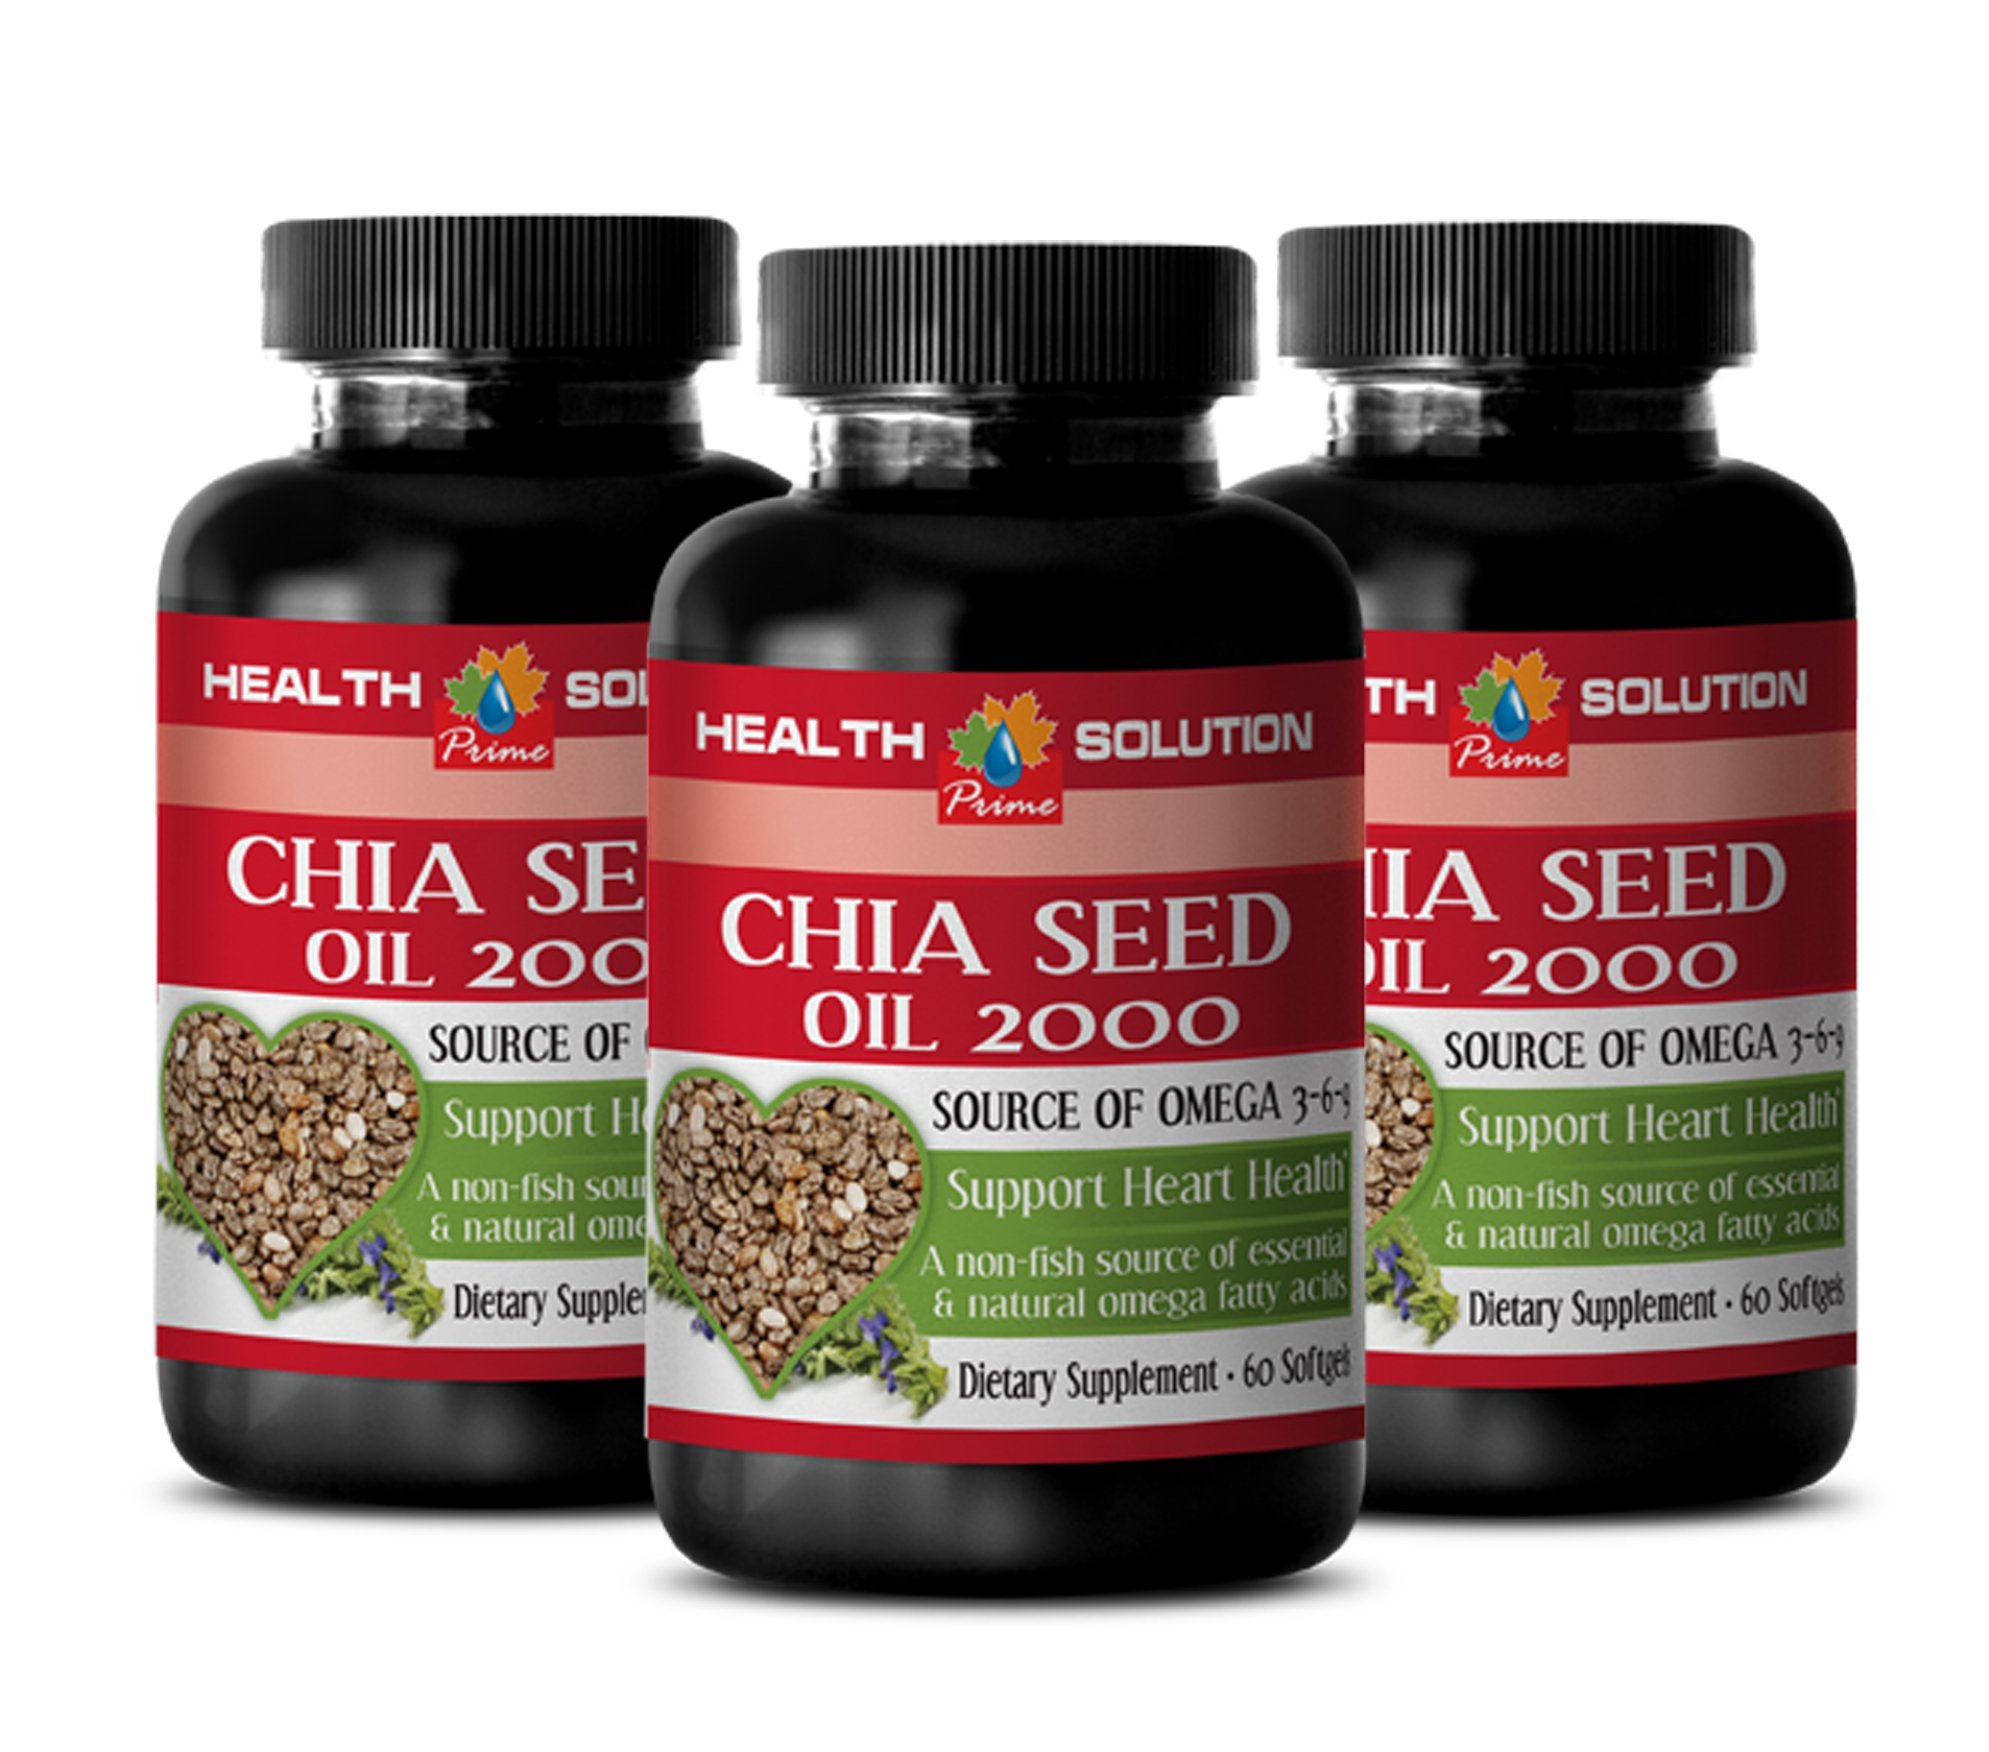 Salvia oil - CHIA SEED OIL 2000 - increase mental energy and focus (3 bottles)